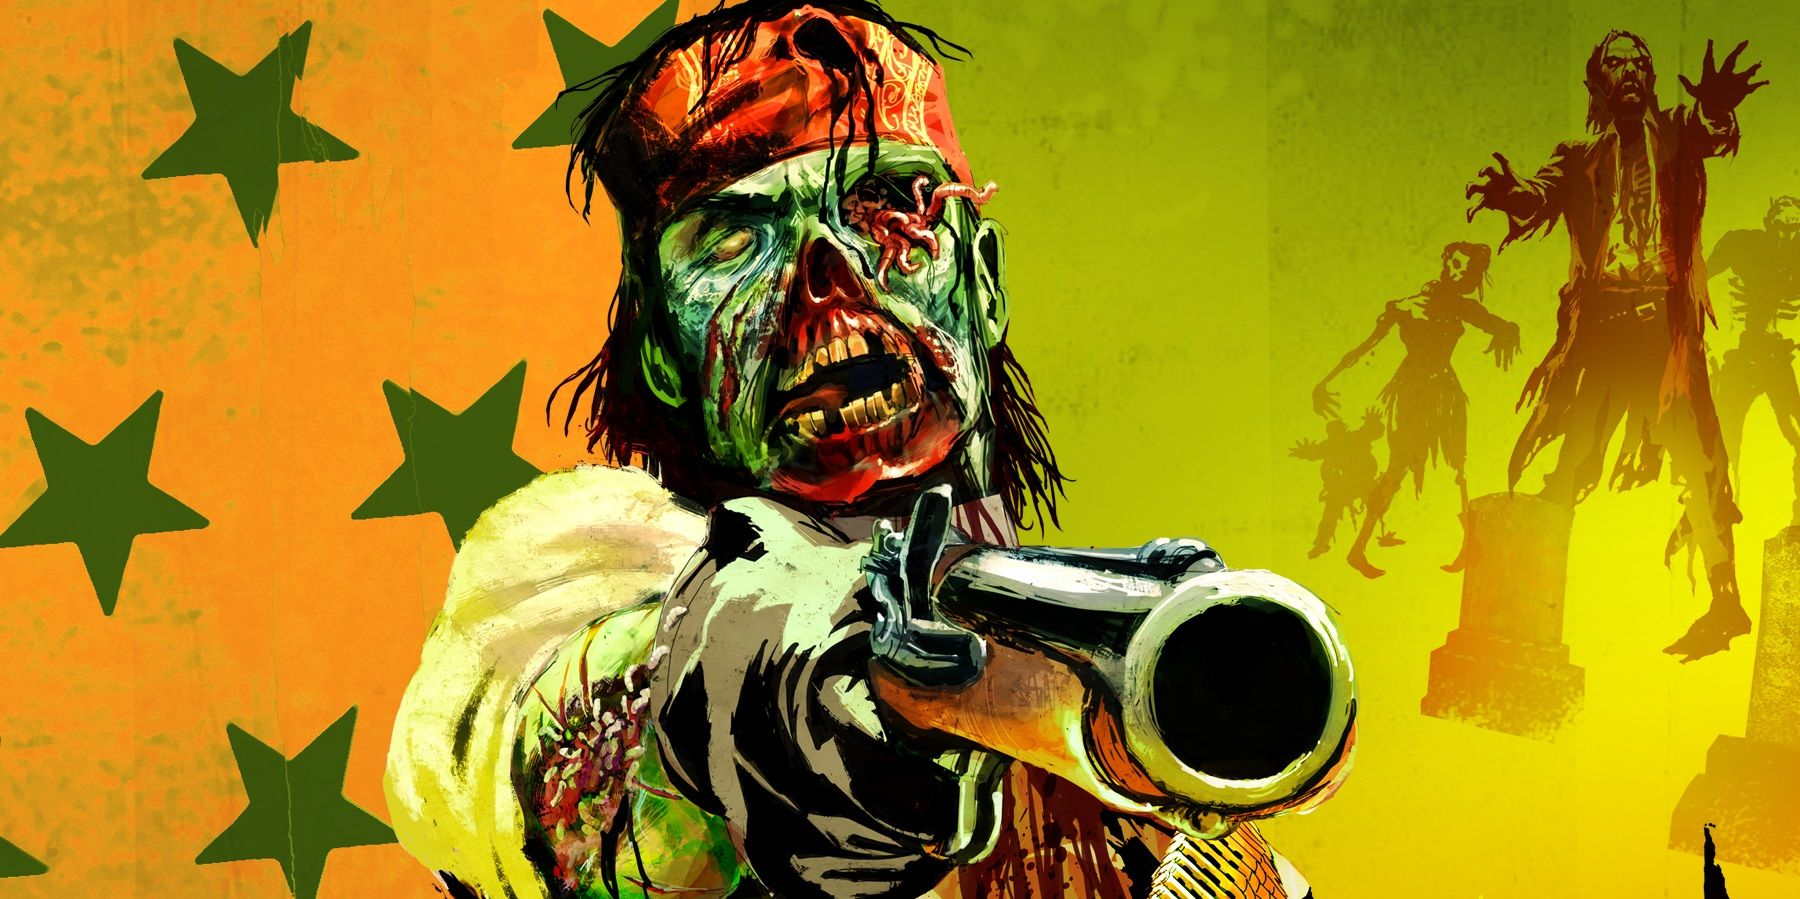 Red Dead Redemption 2: Is This A Tease For New Undead Nightmare?